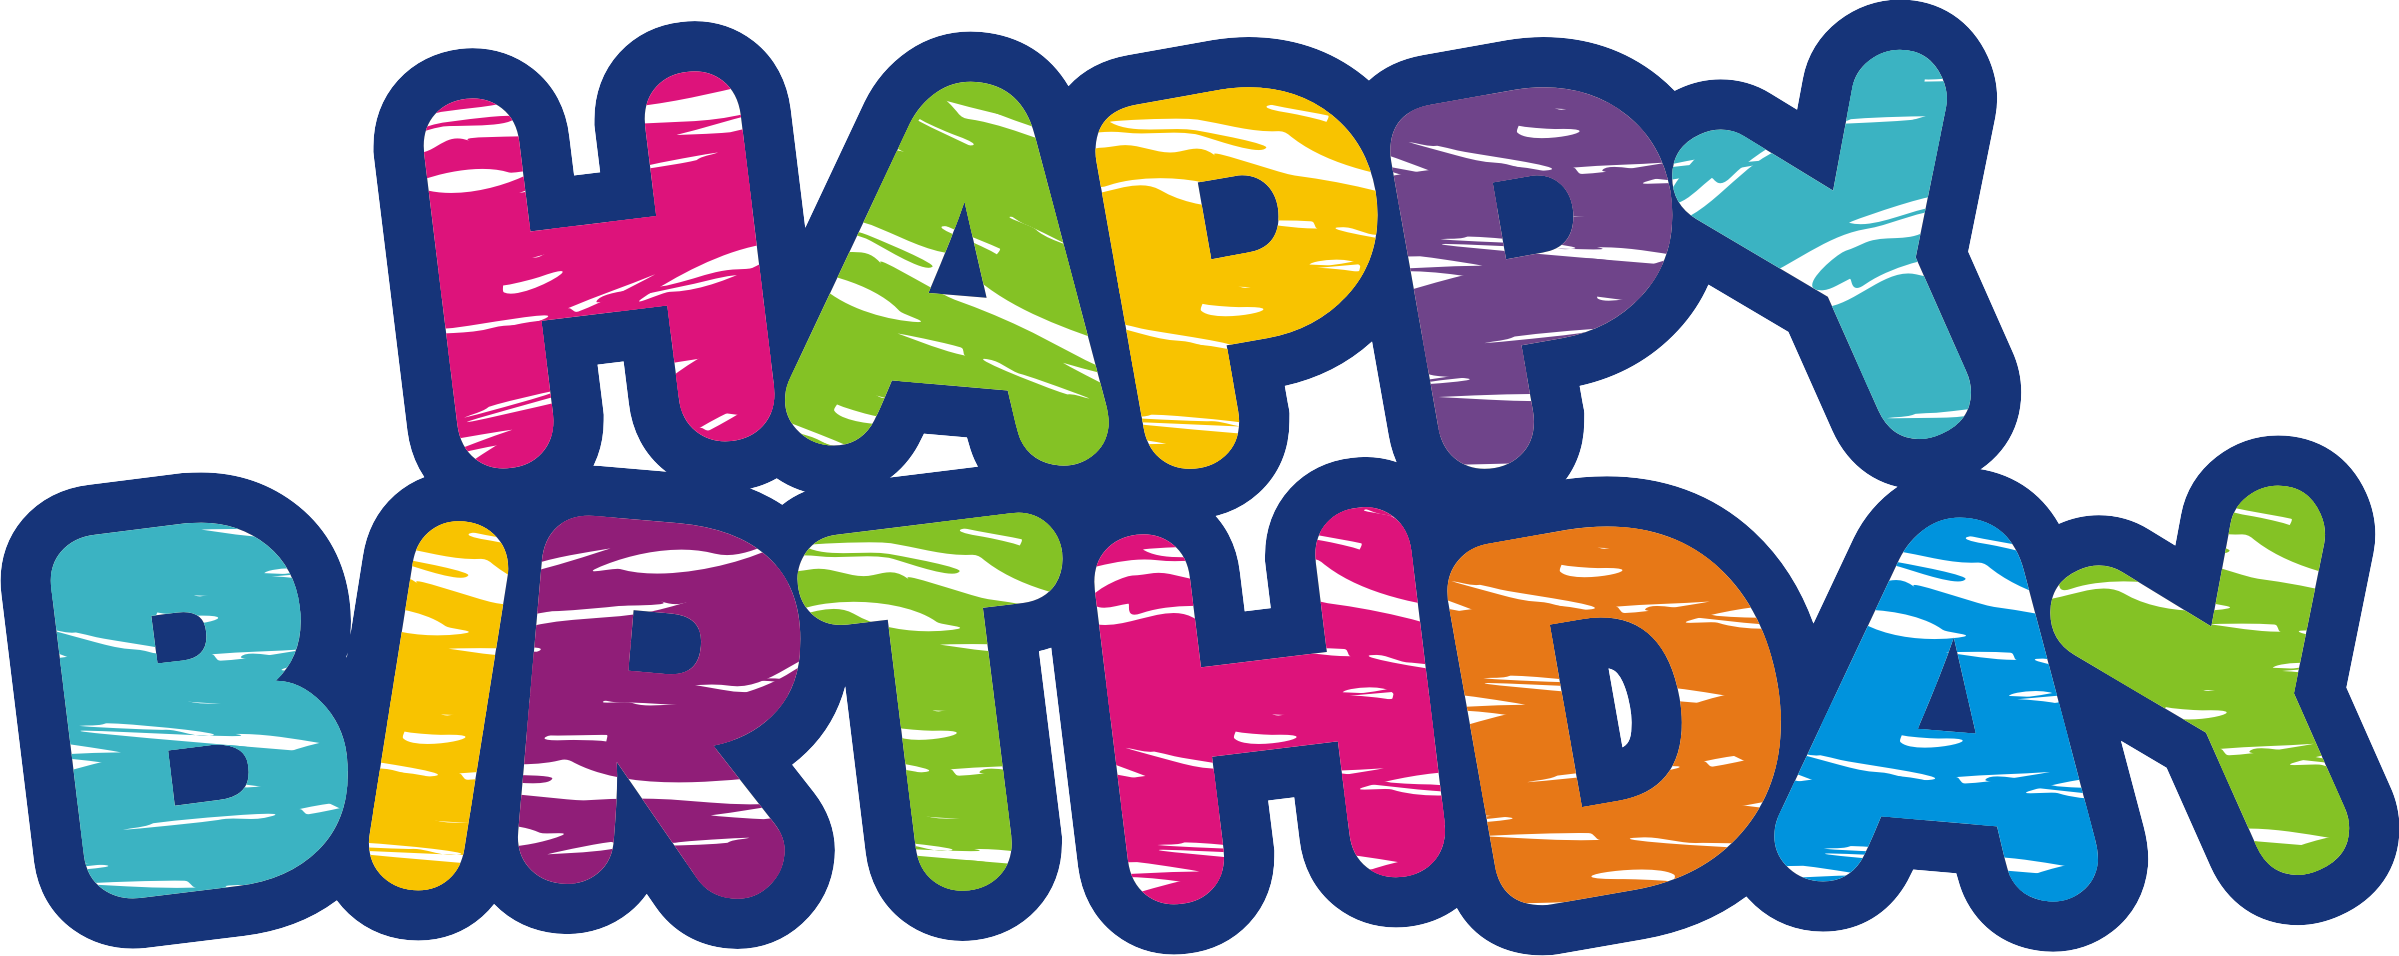 Now you can download Happy Birthday Transparent PNG File